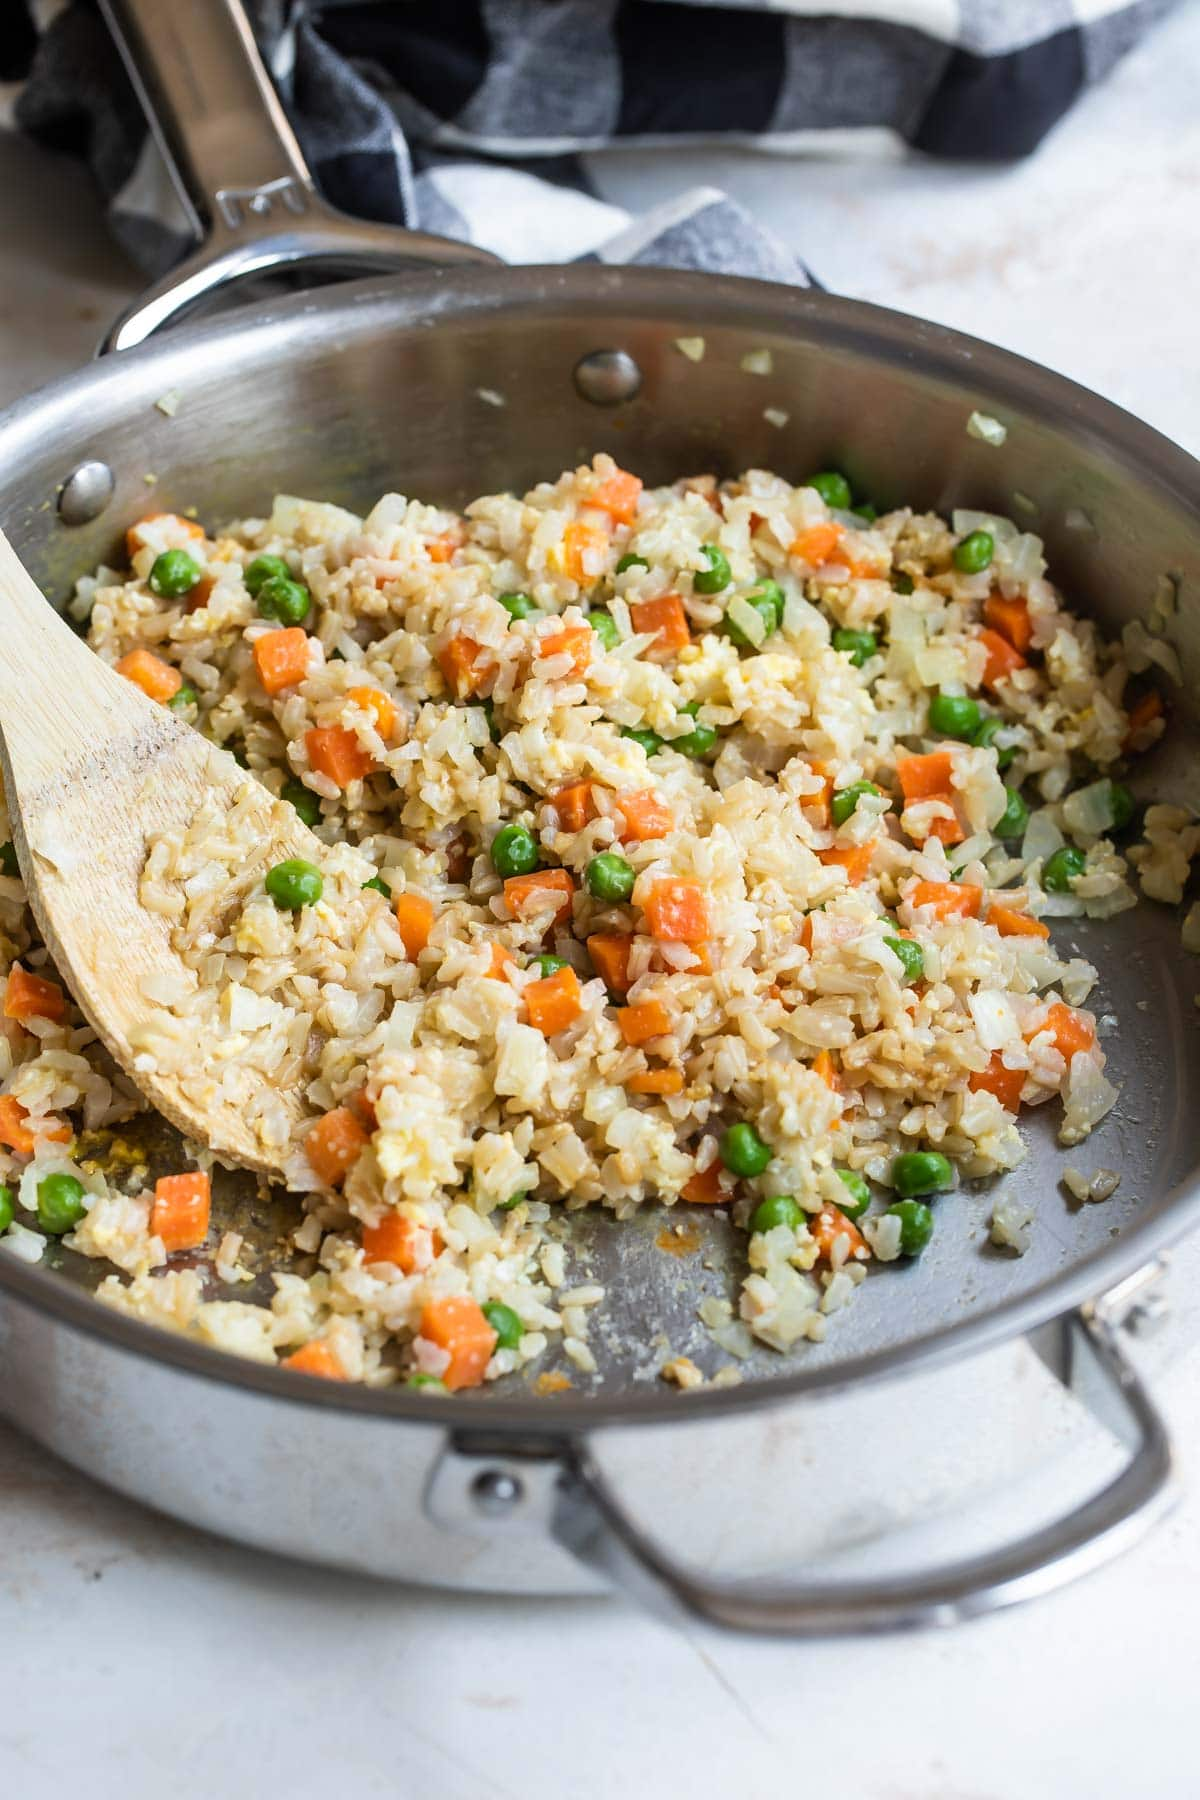 Brown fried rice in a silver skillet.